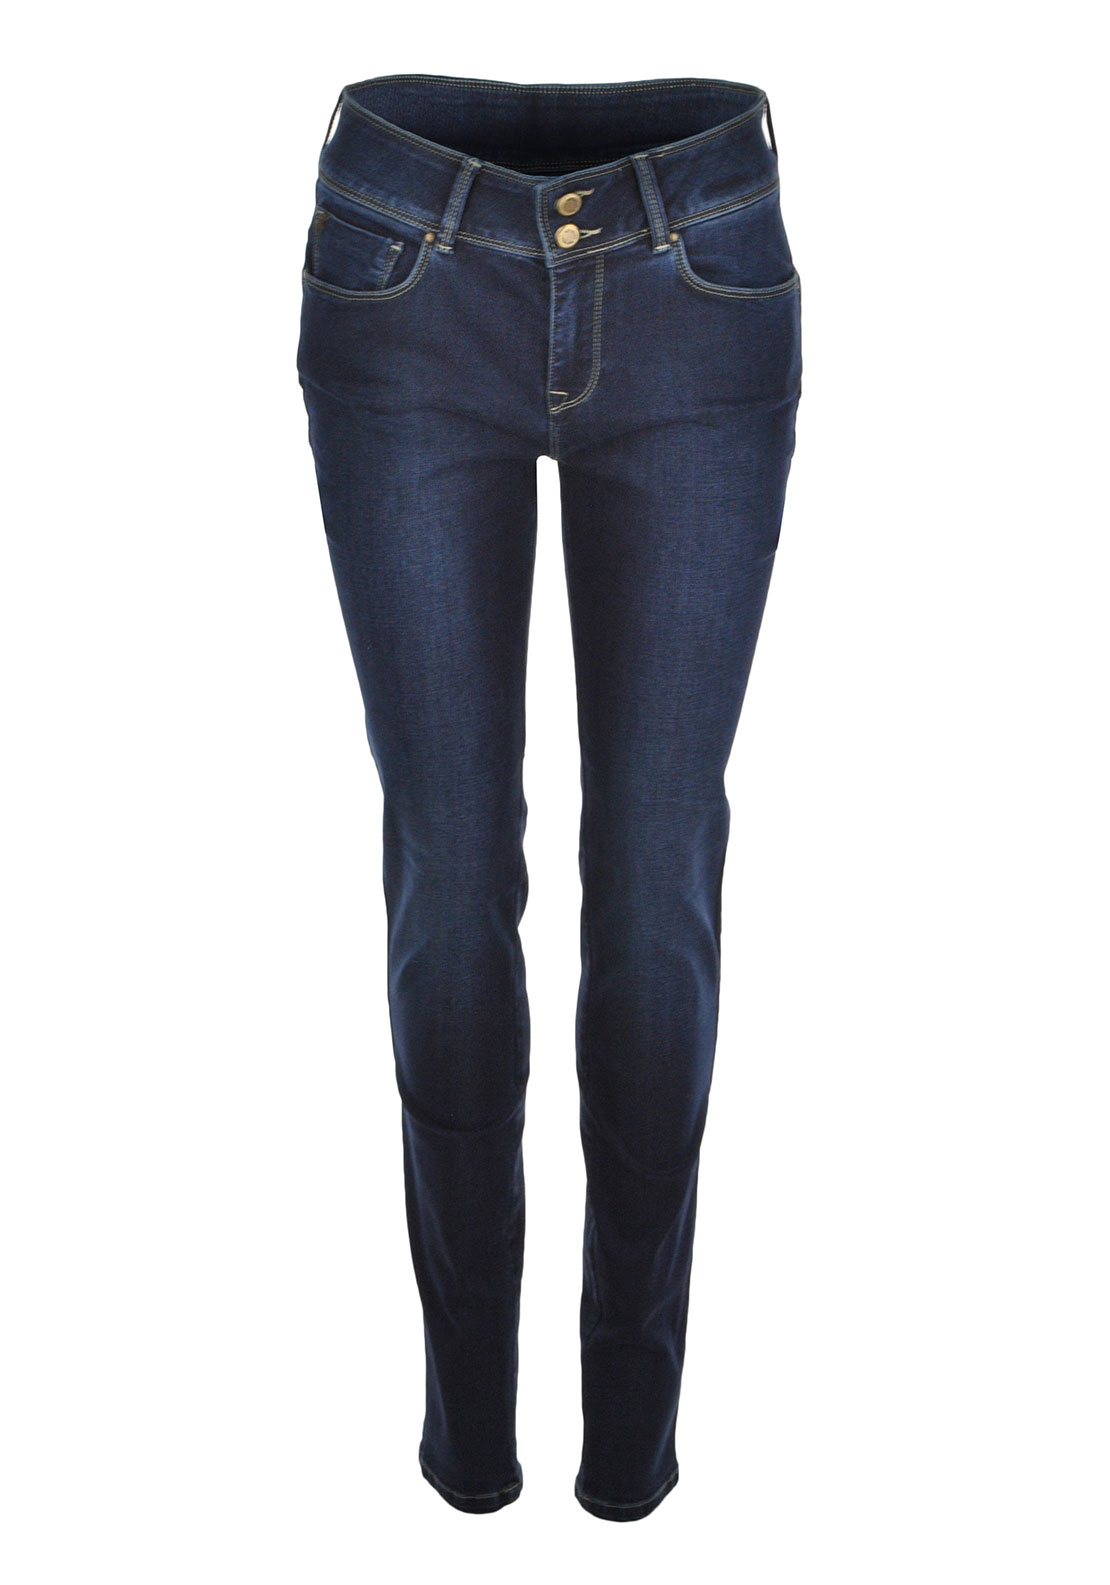 Mos Mosh Porto High Waist Skinny Jeans, Blue Denim